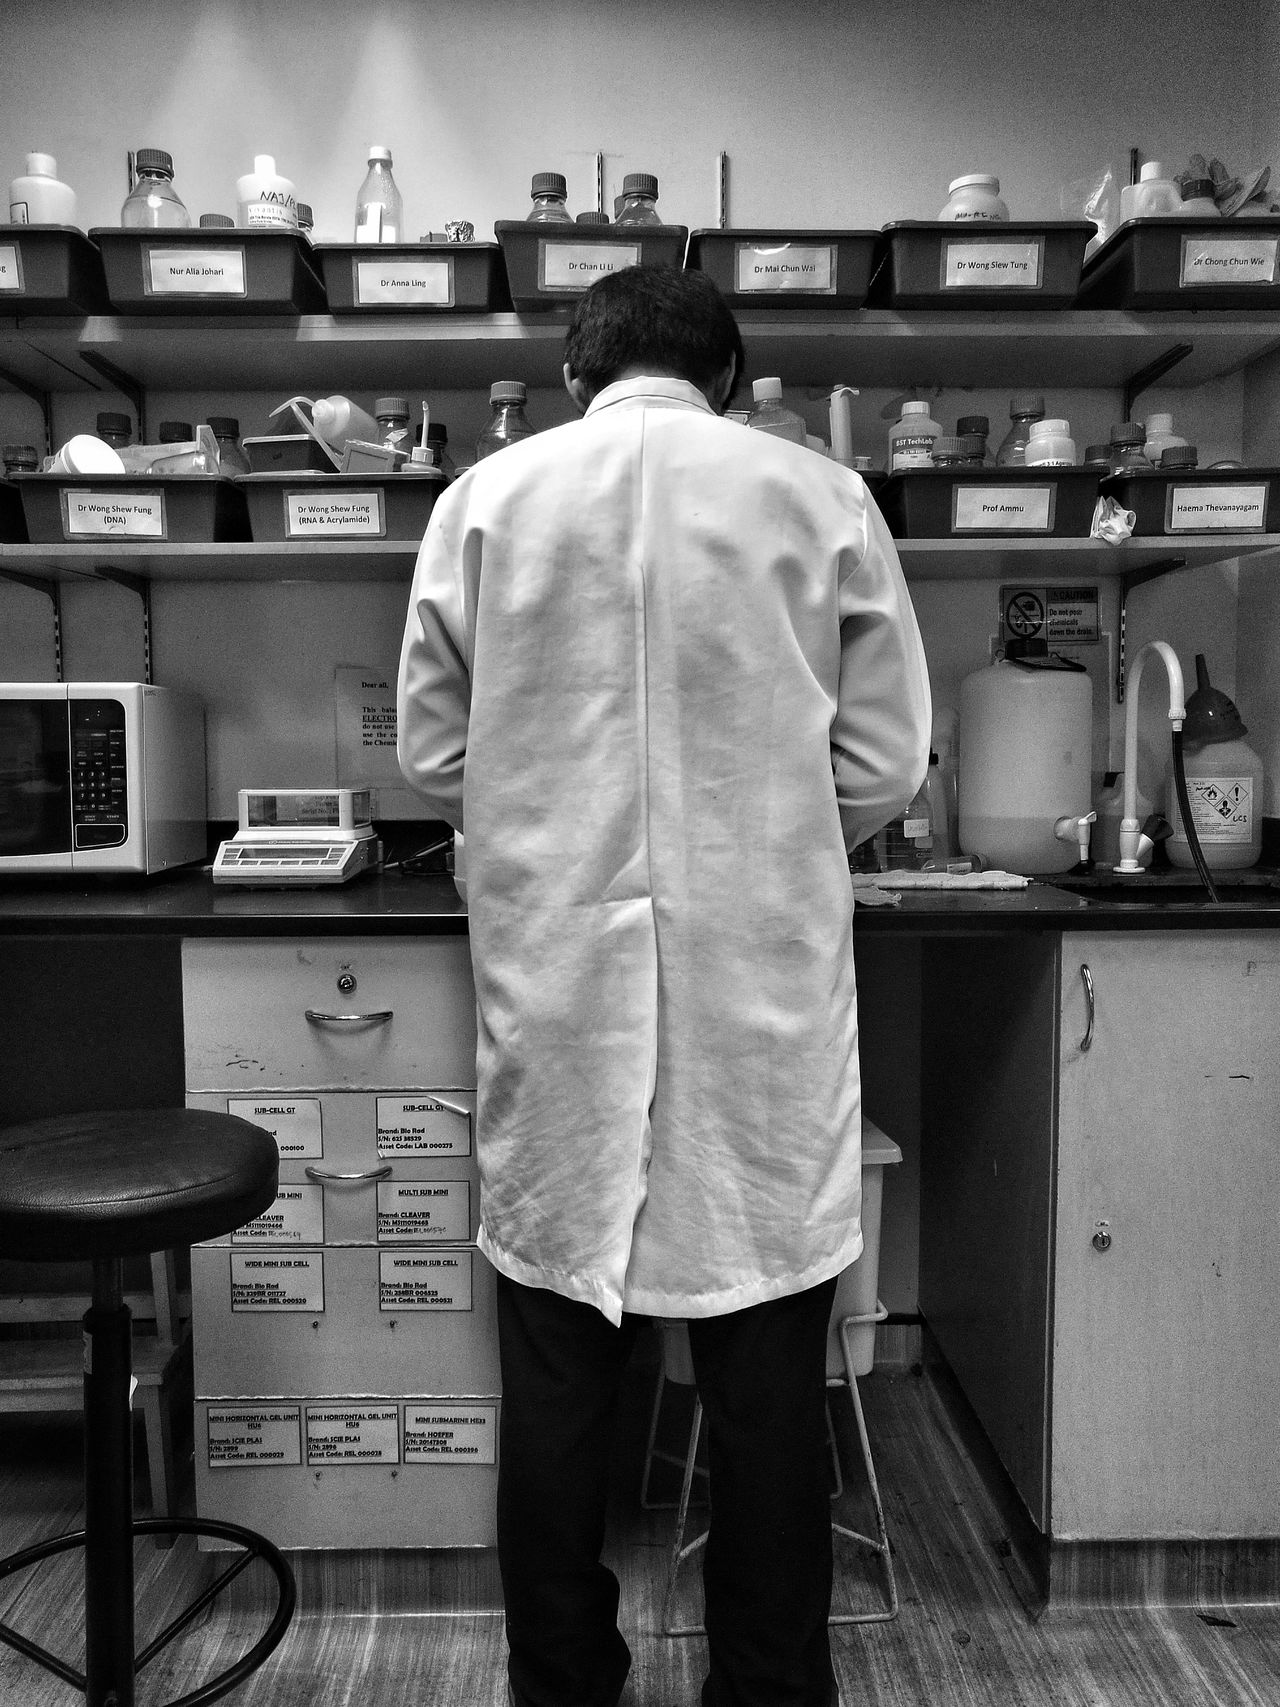 Monochrome Photography Laboratory Laboratory Work Experiment Scientist Scientistexperiment Standing Men Labcoat Labwork Laboratory Equipment Laboratory Experiments Scientific Experiment Research Research And Development Research Project Researchfacility Research Institute University